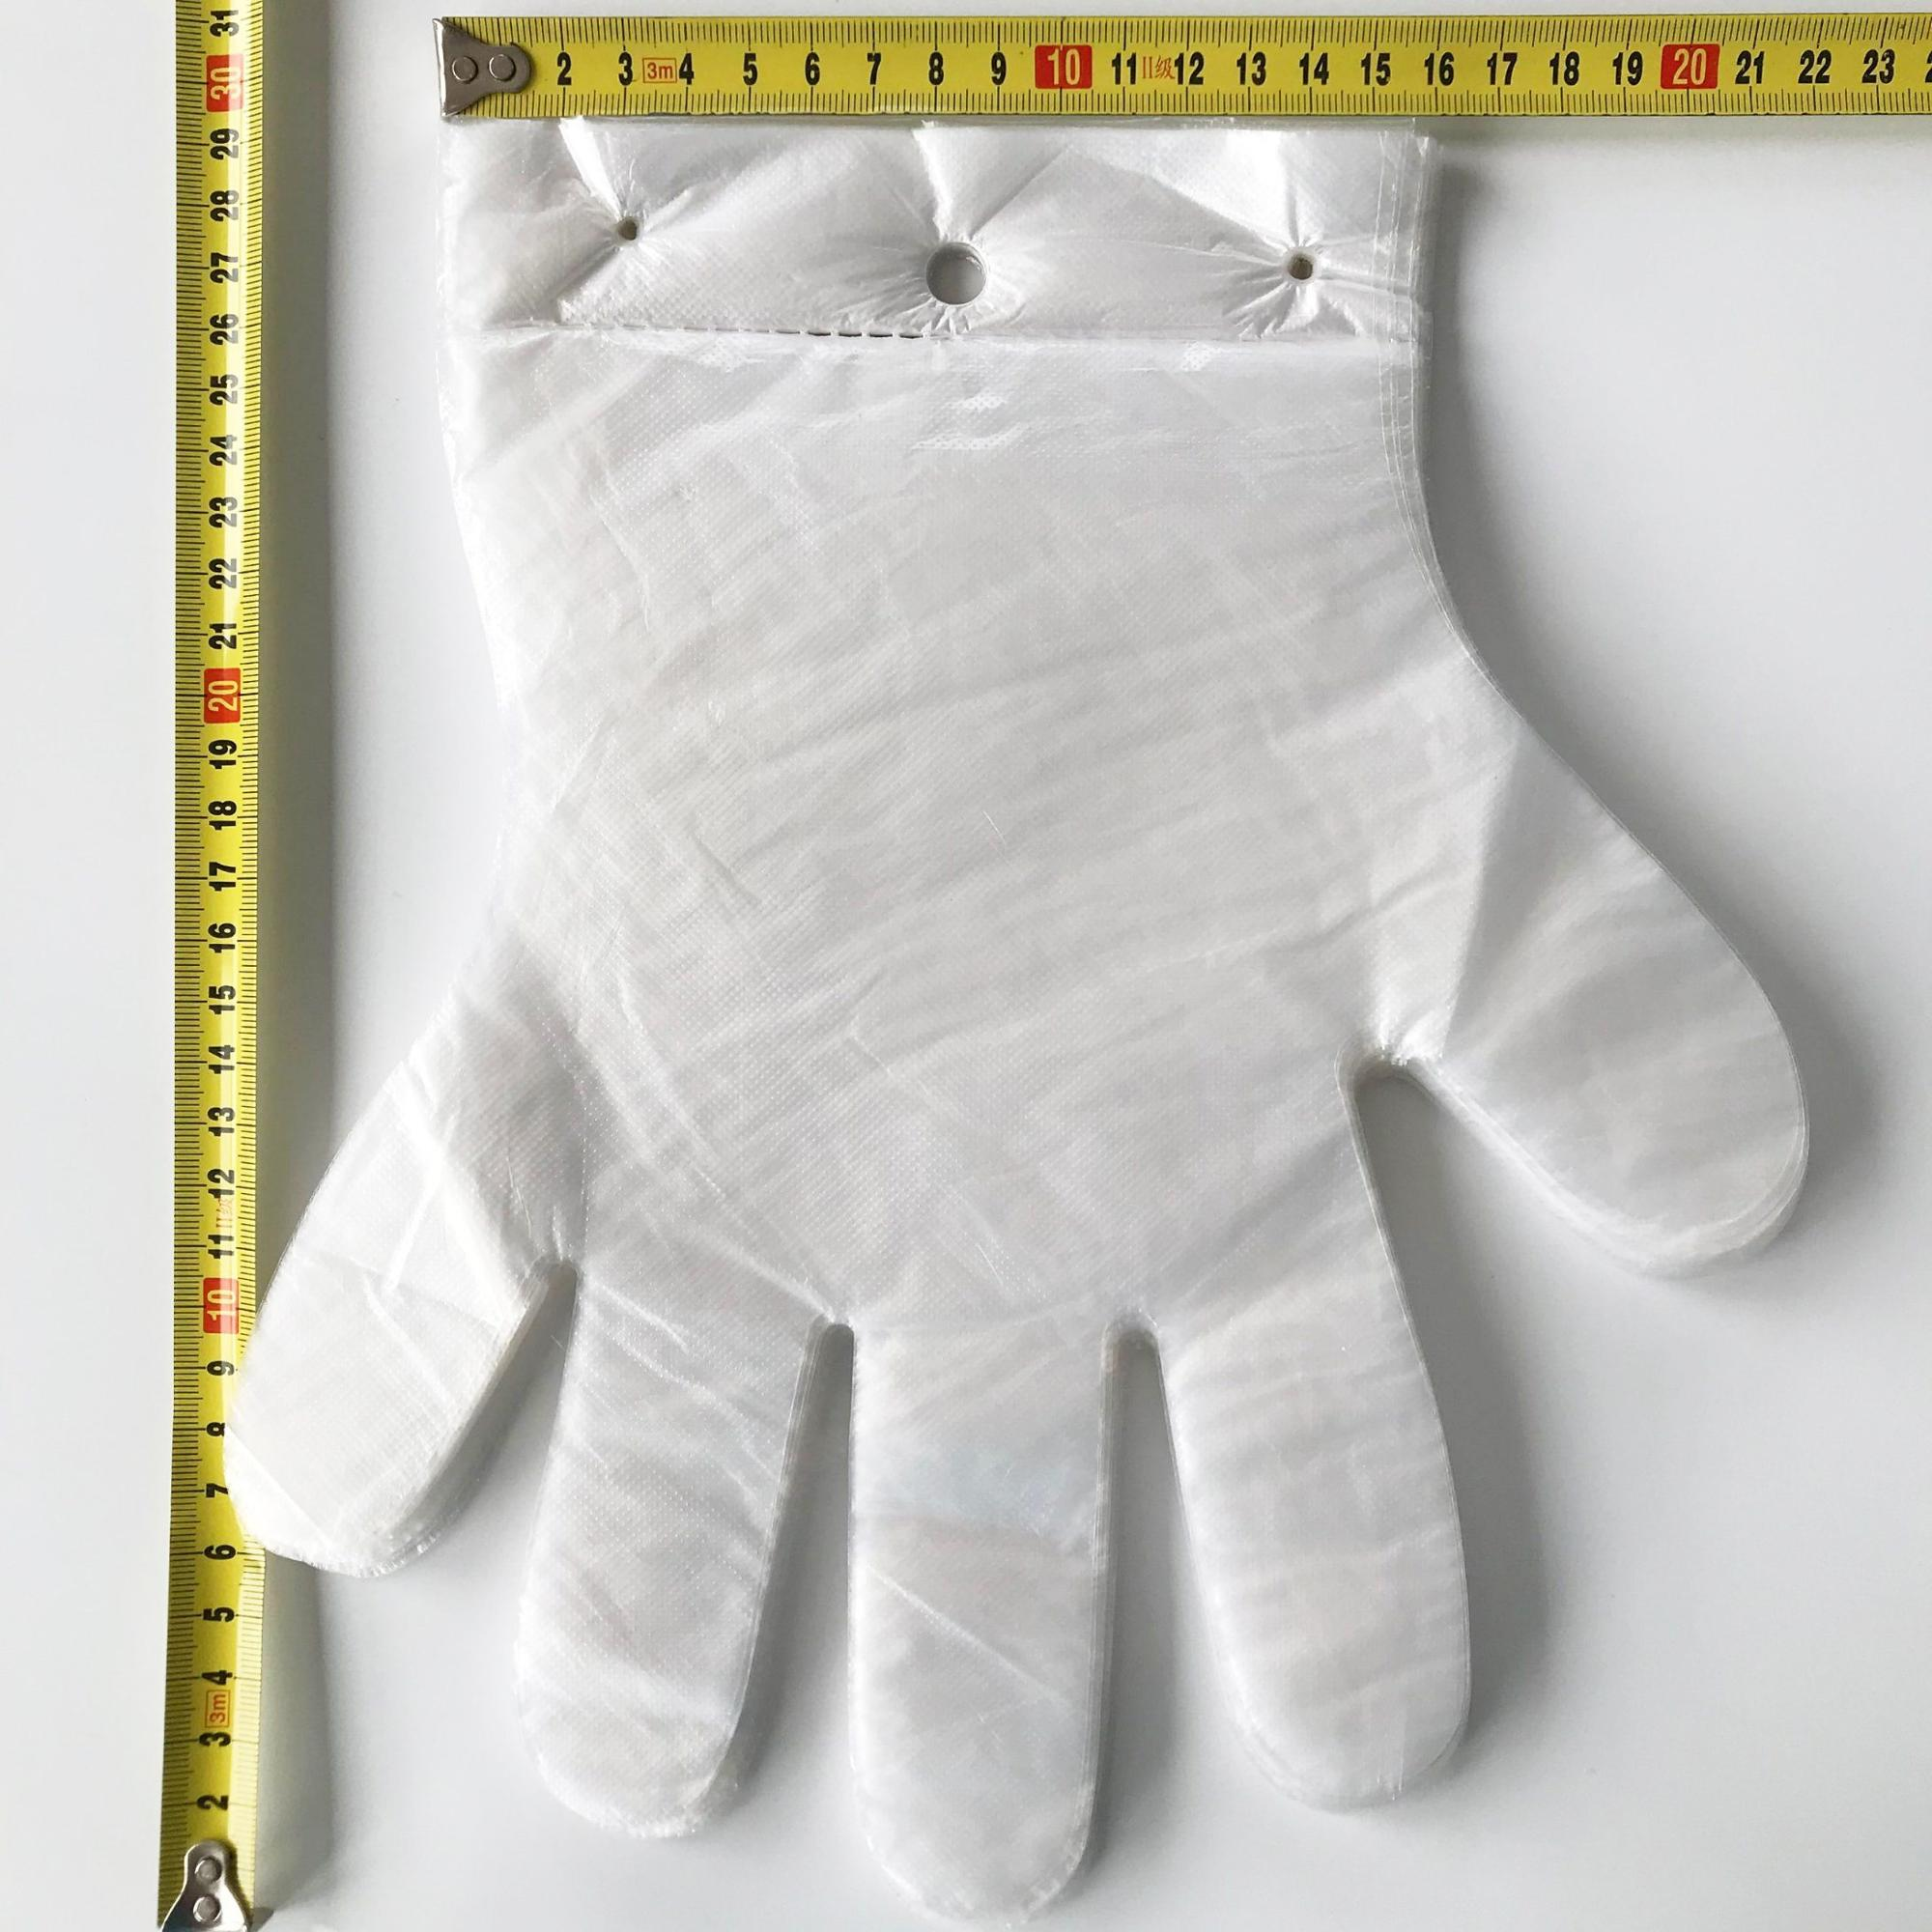 Anti-slip with eyelet in pack 0.7g glove transparent HDPE cleaning disposable glove eco food plastic PE gloves with hole